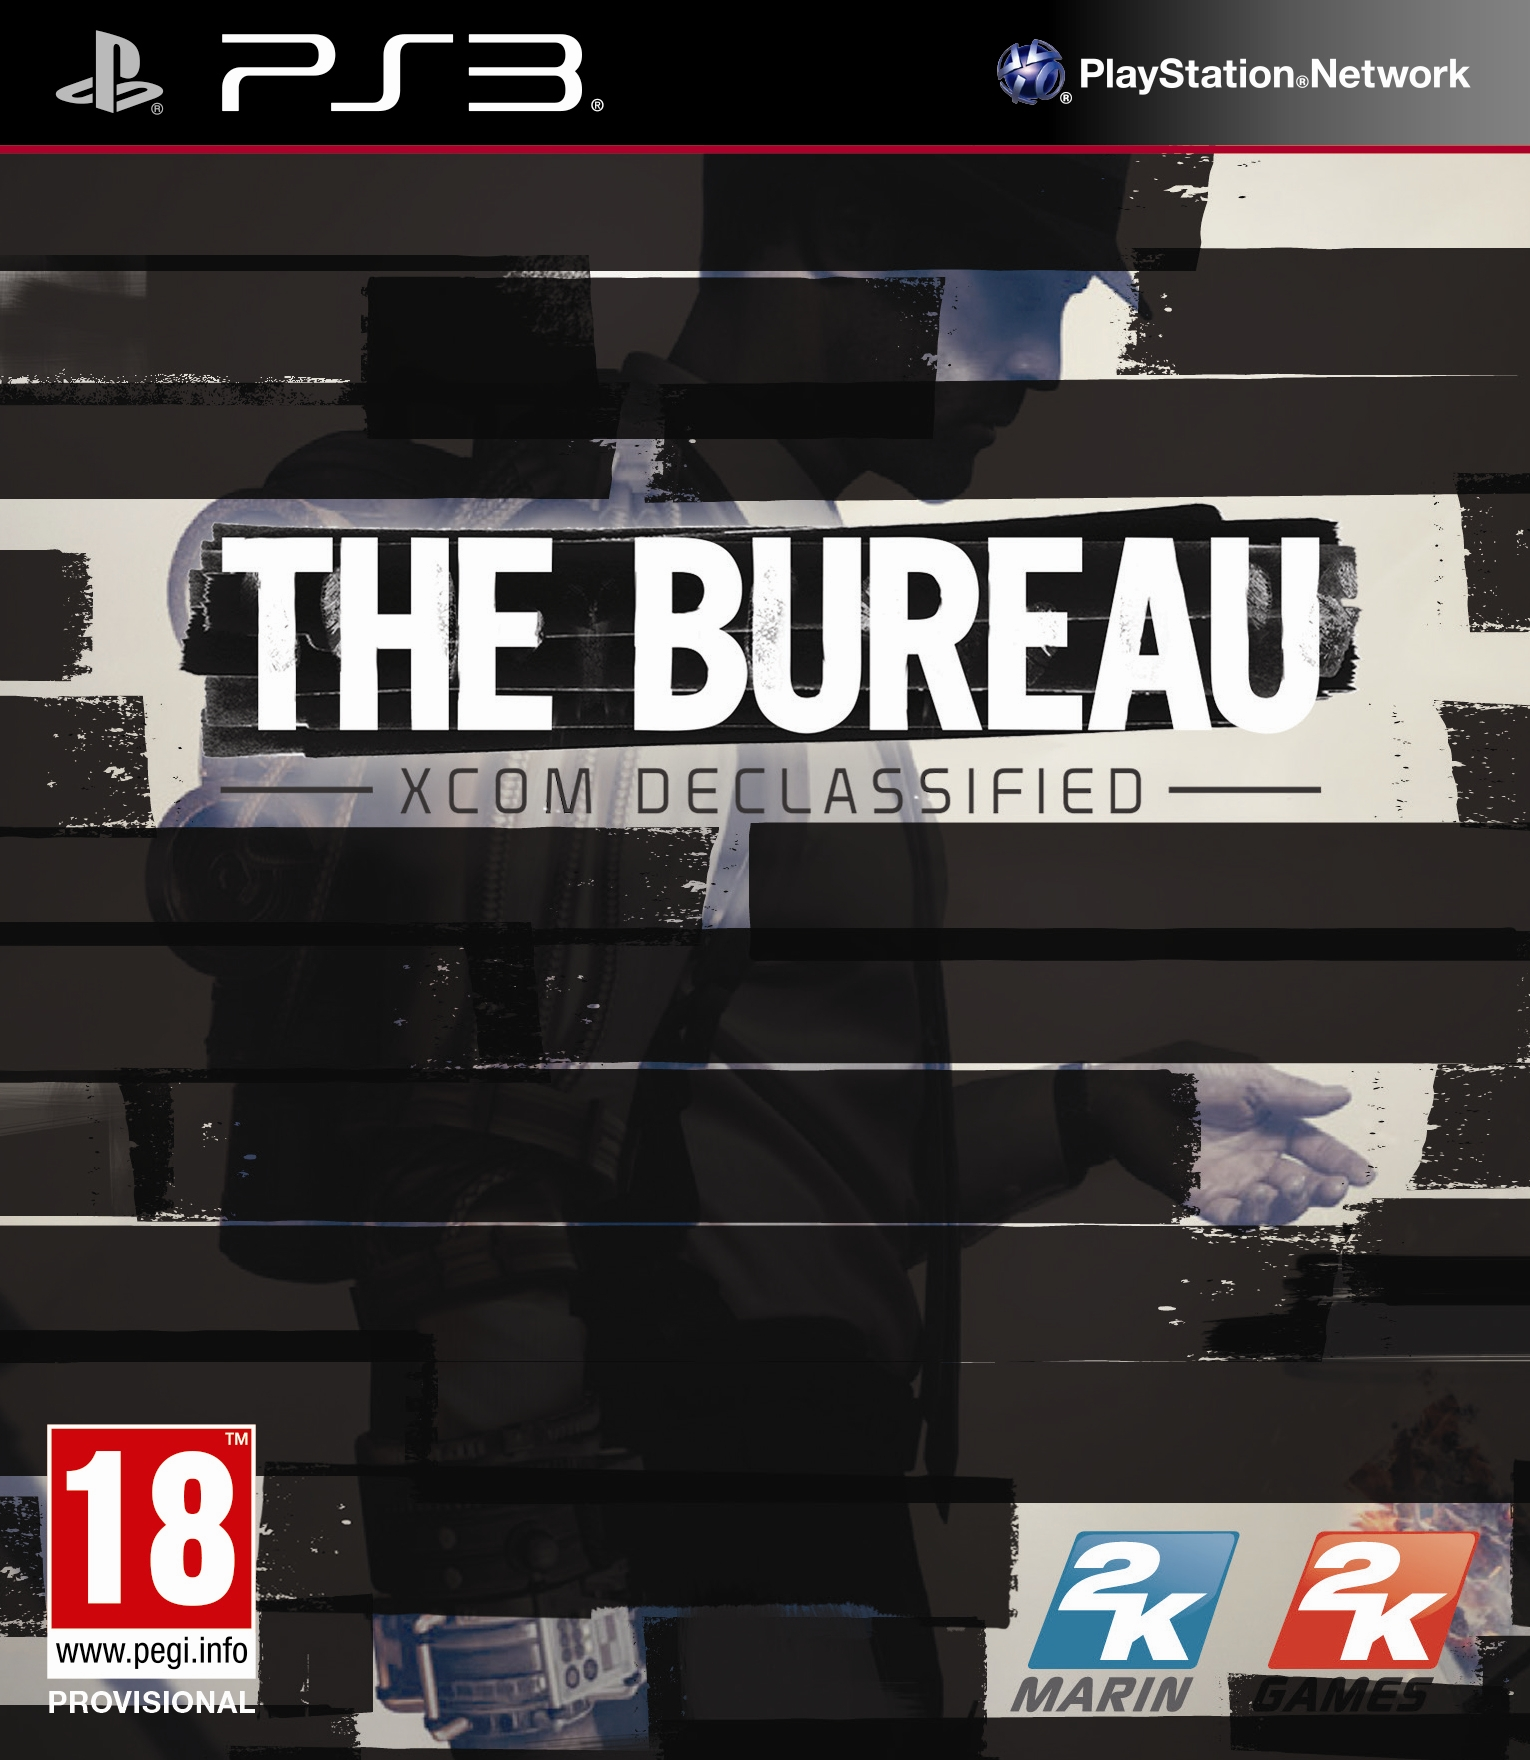 The bureau xcom declassified windows x360 ps3 game mod db for Bureau xcom declassified